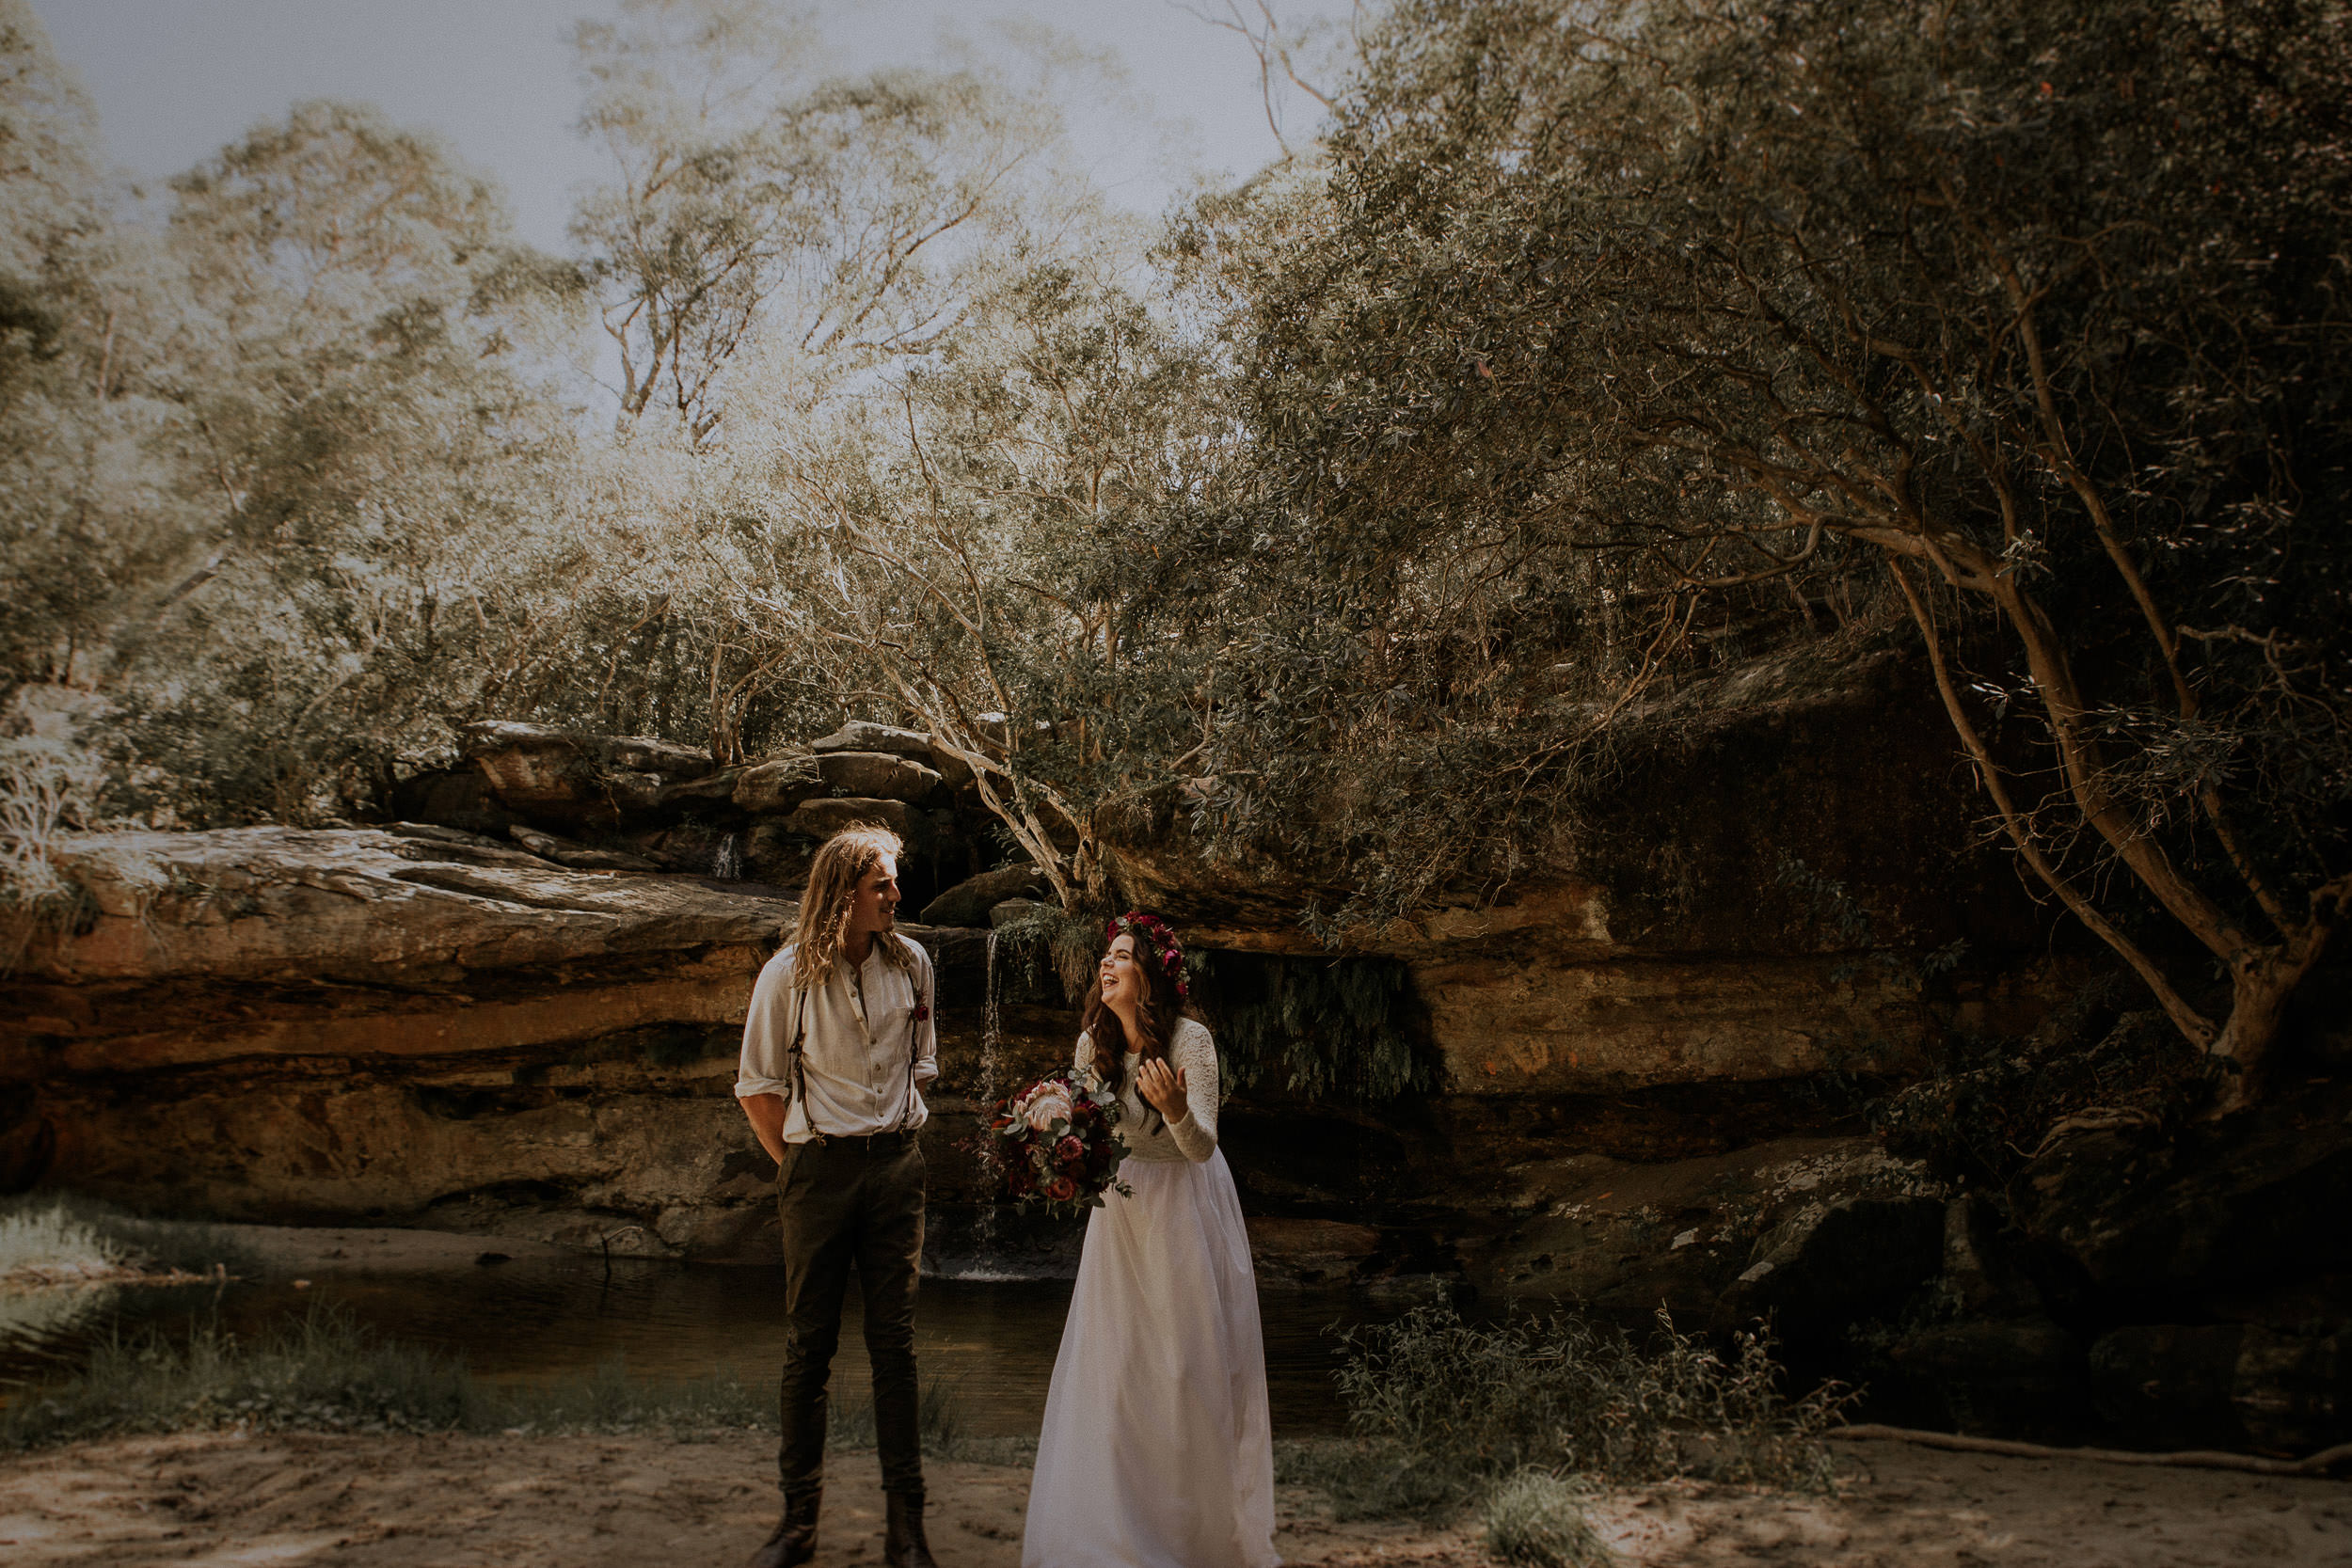 beth & caleb - kings & thieves elopement wedding photography -- submission 120.jpg